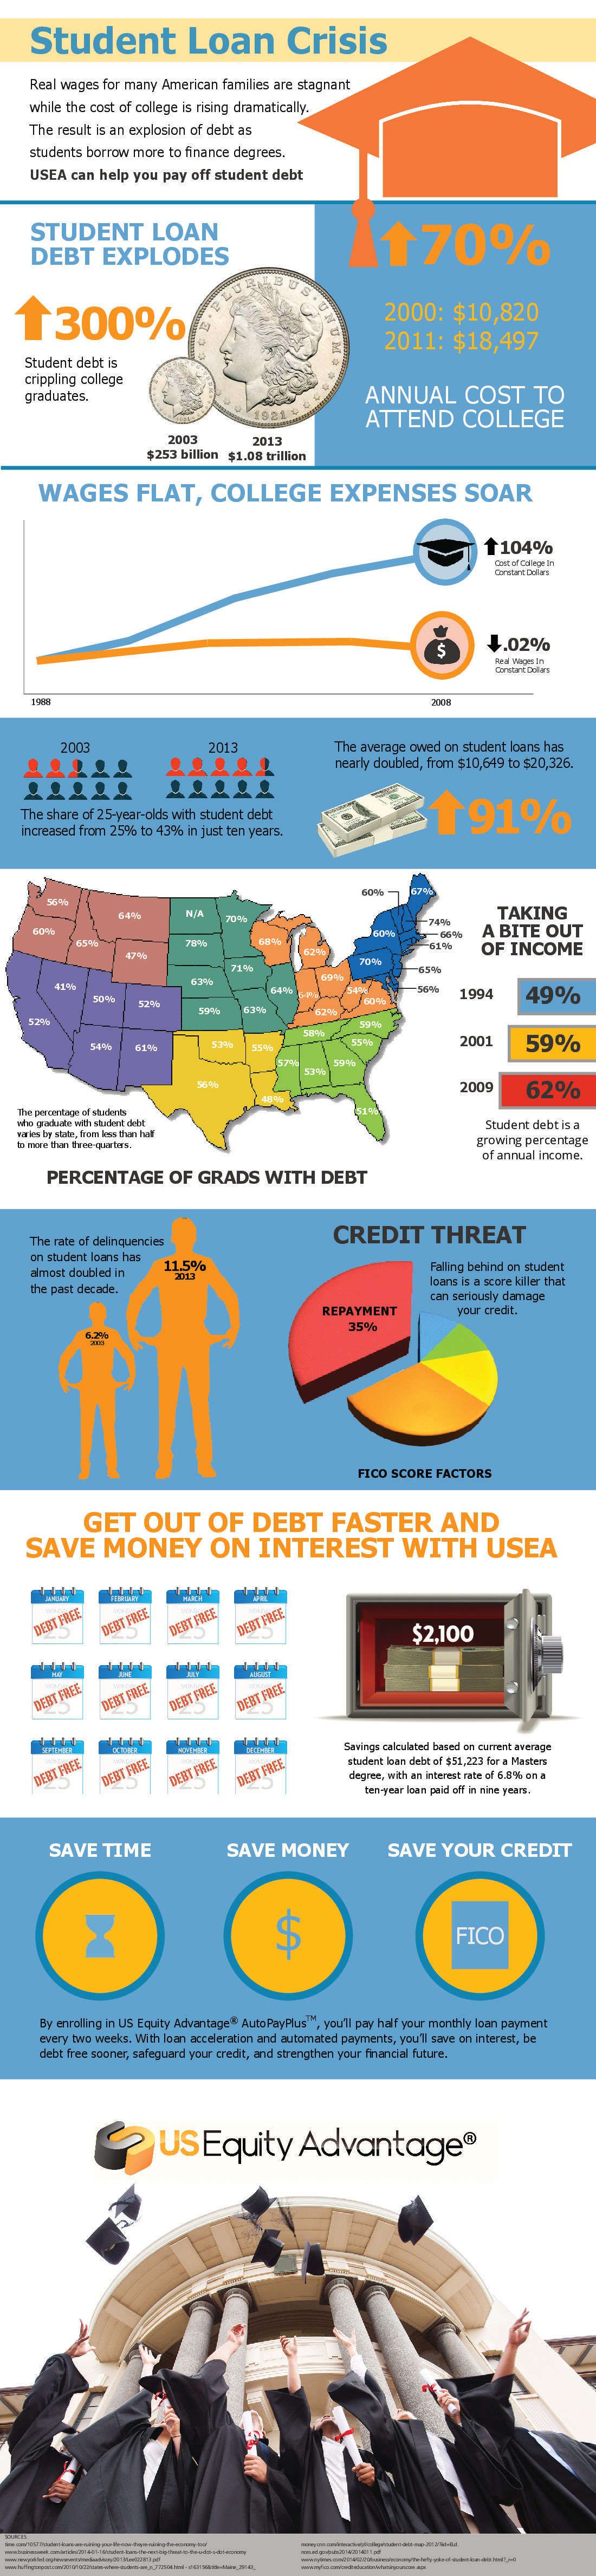 Infographic: Student Loan Crisis #infographic